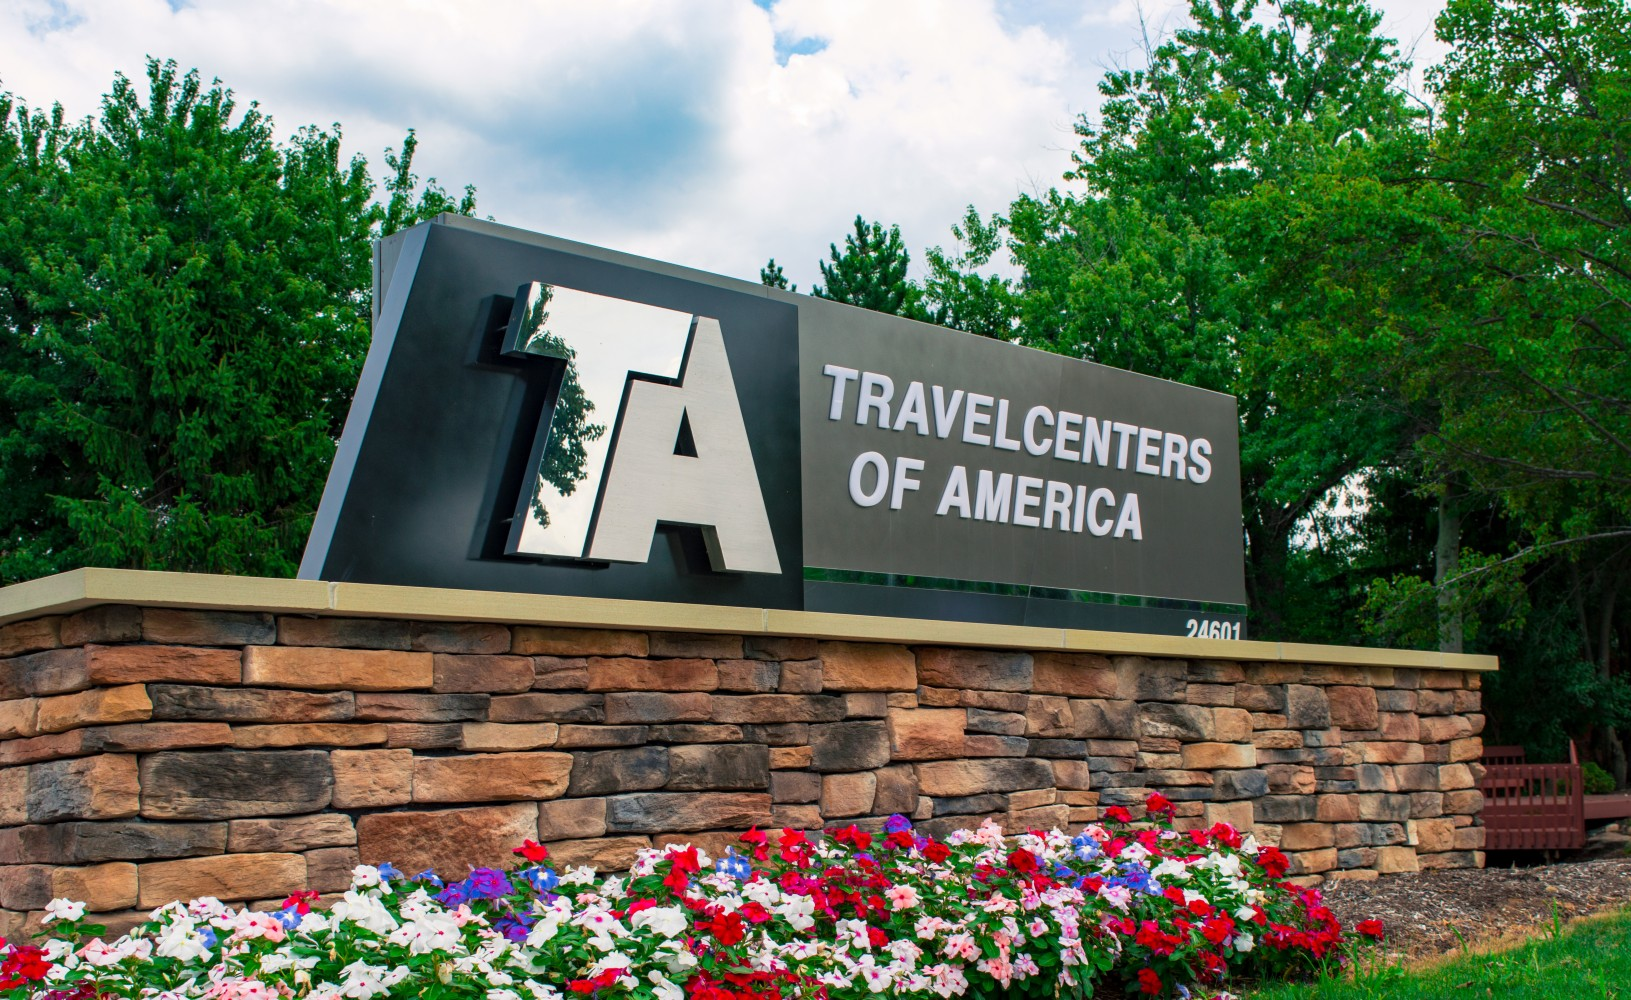 About TravelCenters of America